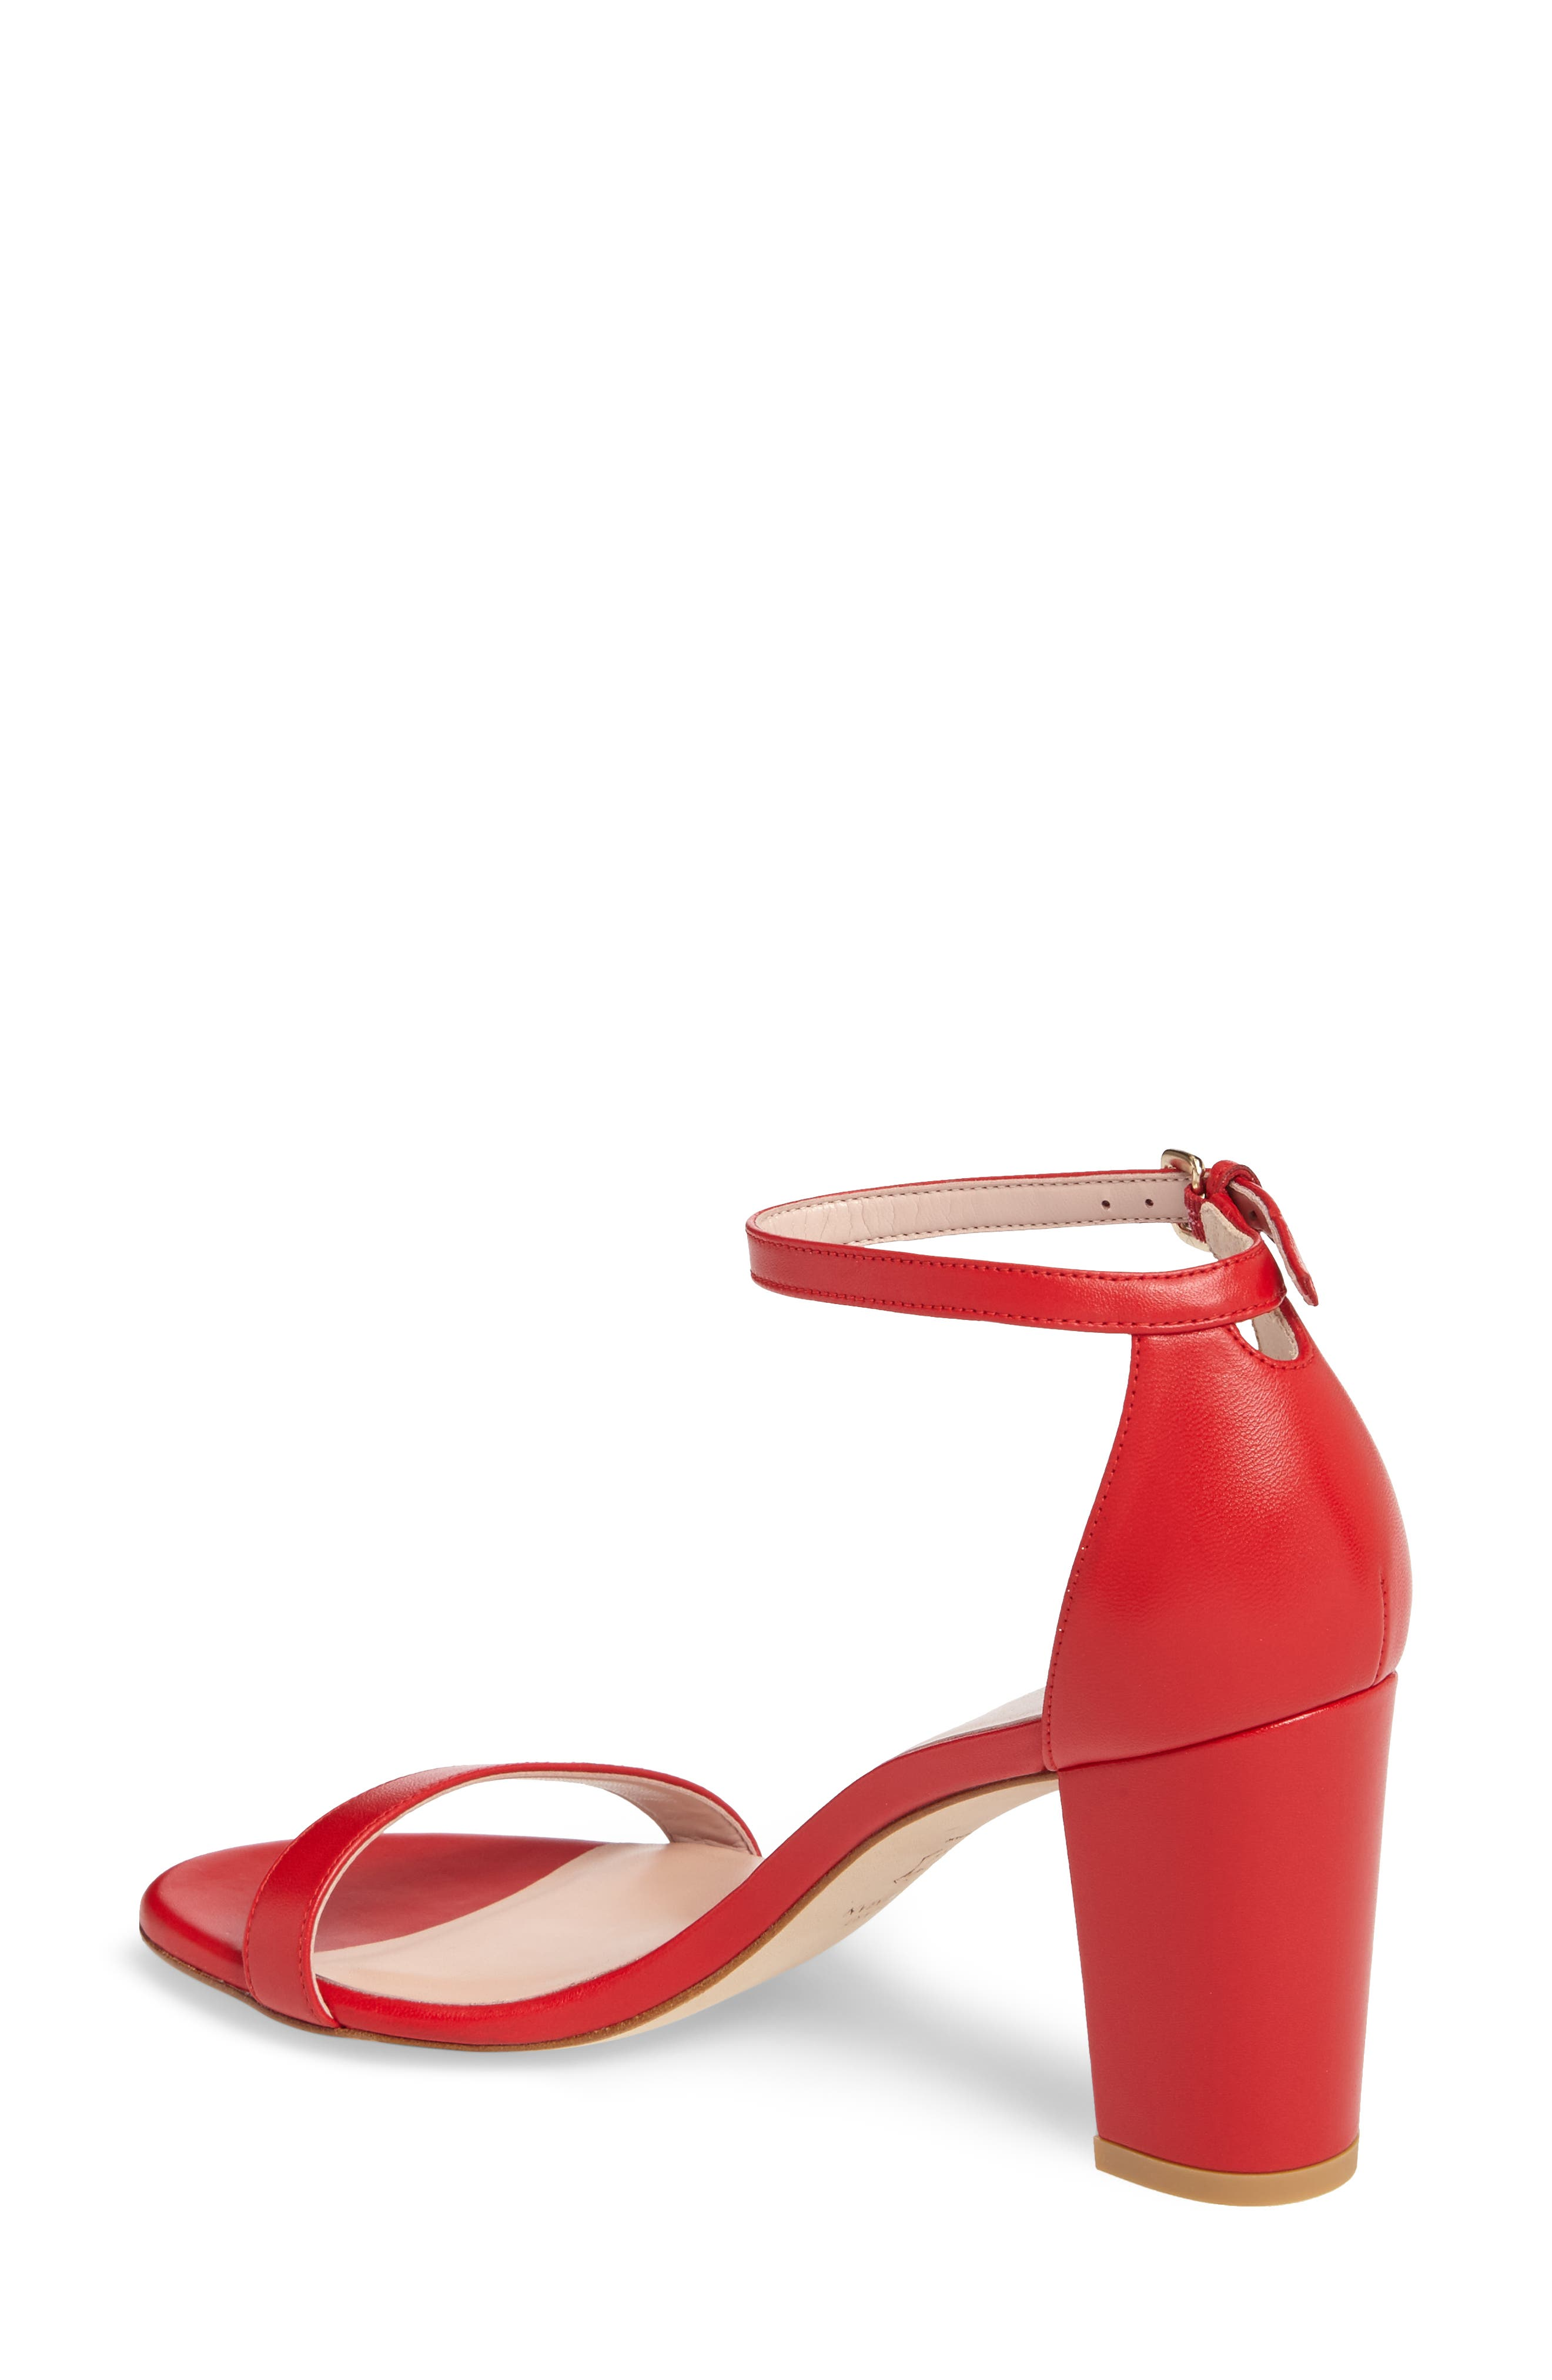 NearlyNude Ankle Strap Sandal,                             Alternate thumbnail 34, color,